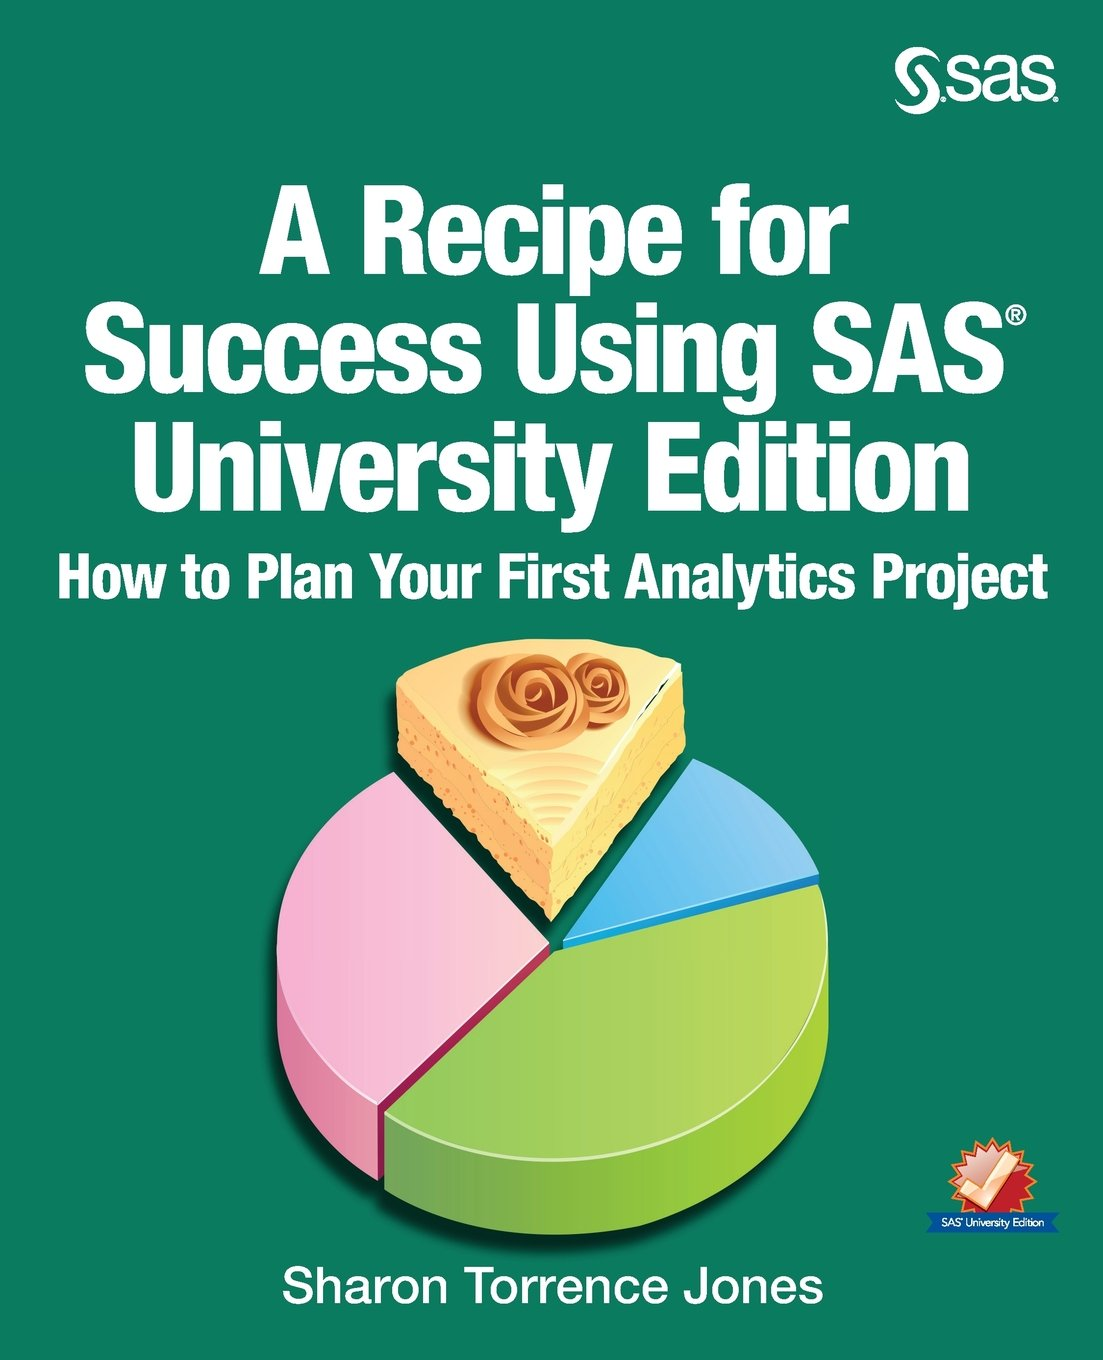 A Recipe for Success Using SAS University Edition: How to